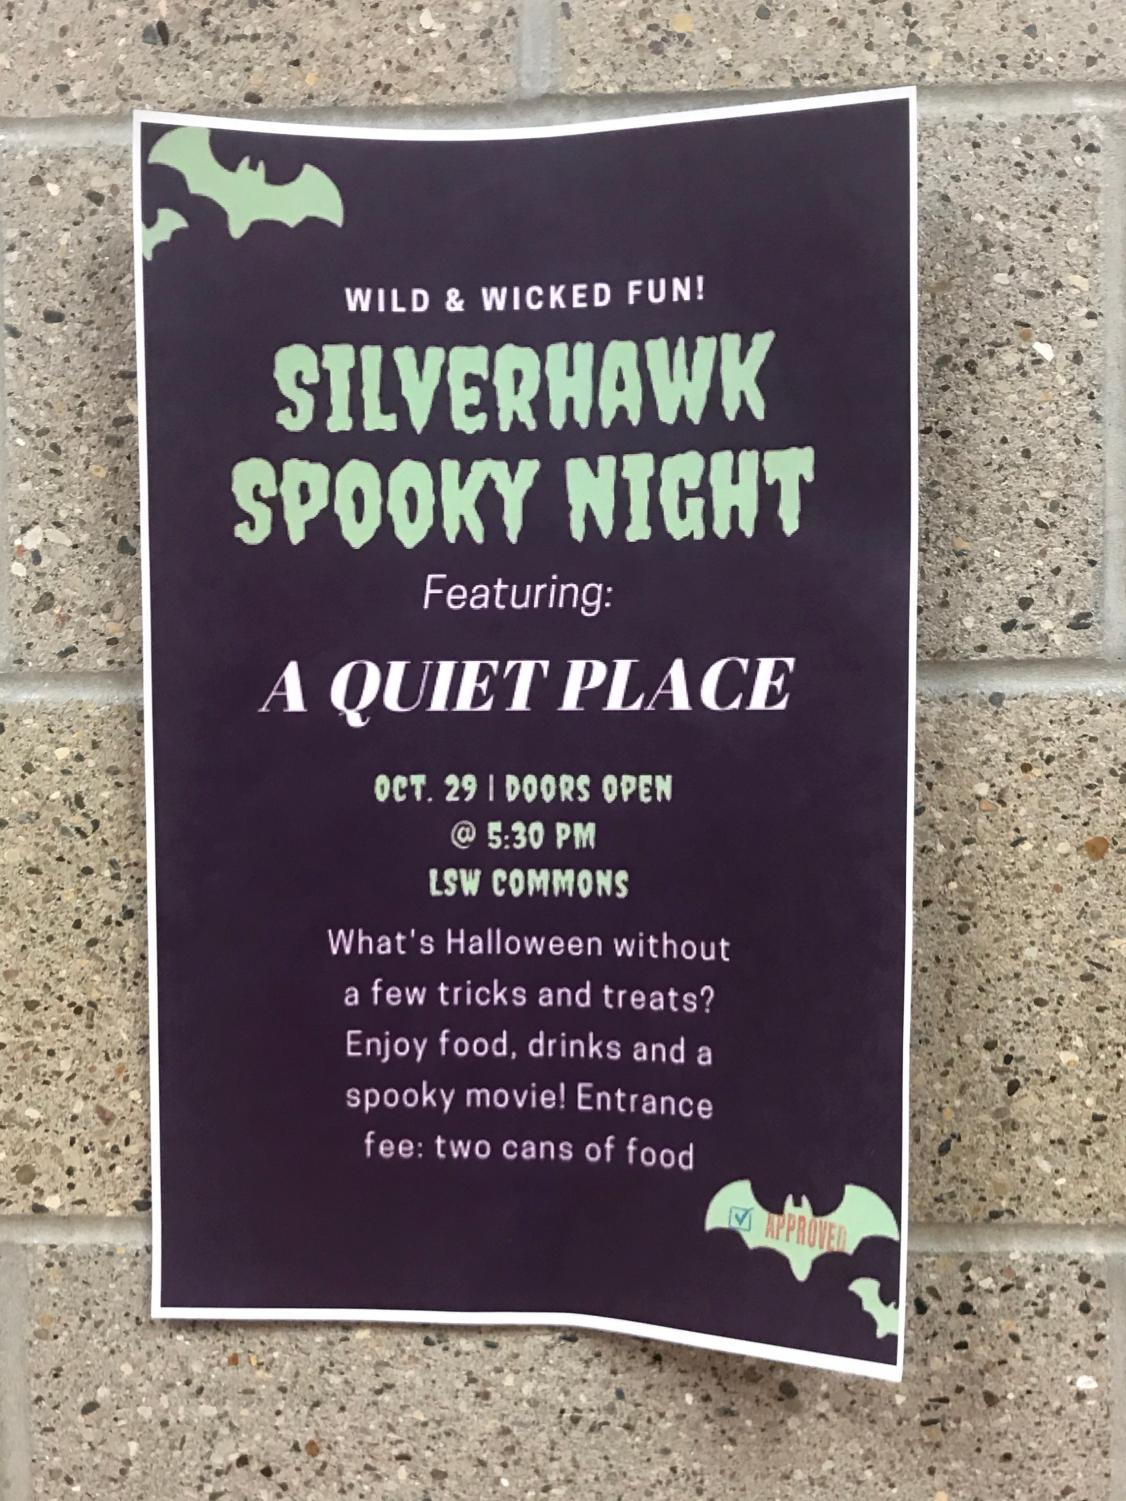 Silver Hawk spooky night is set to take place on Tuesday, Oct. 29th.